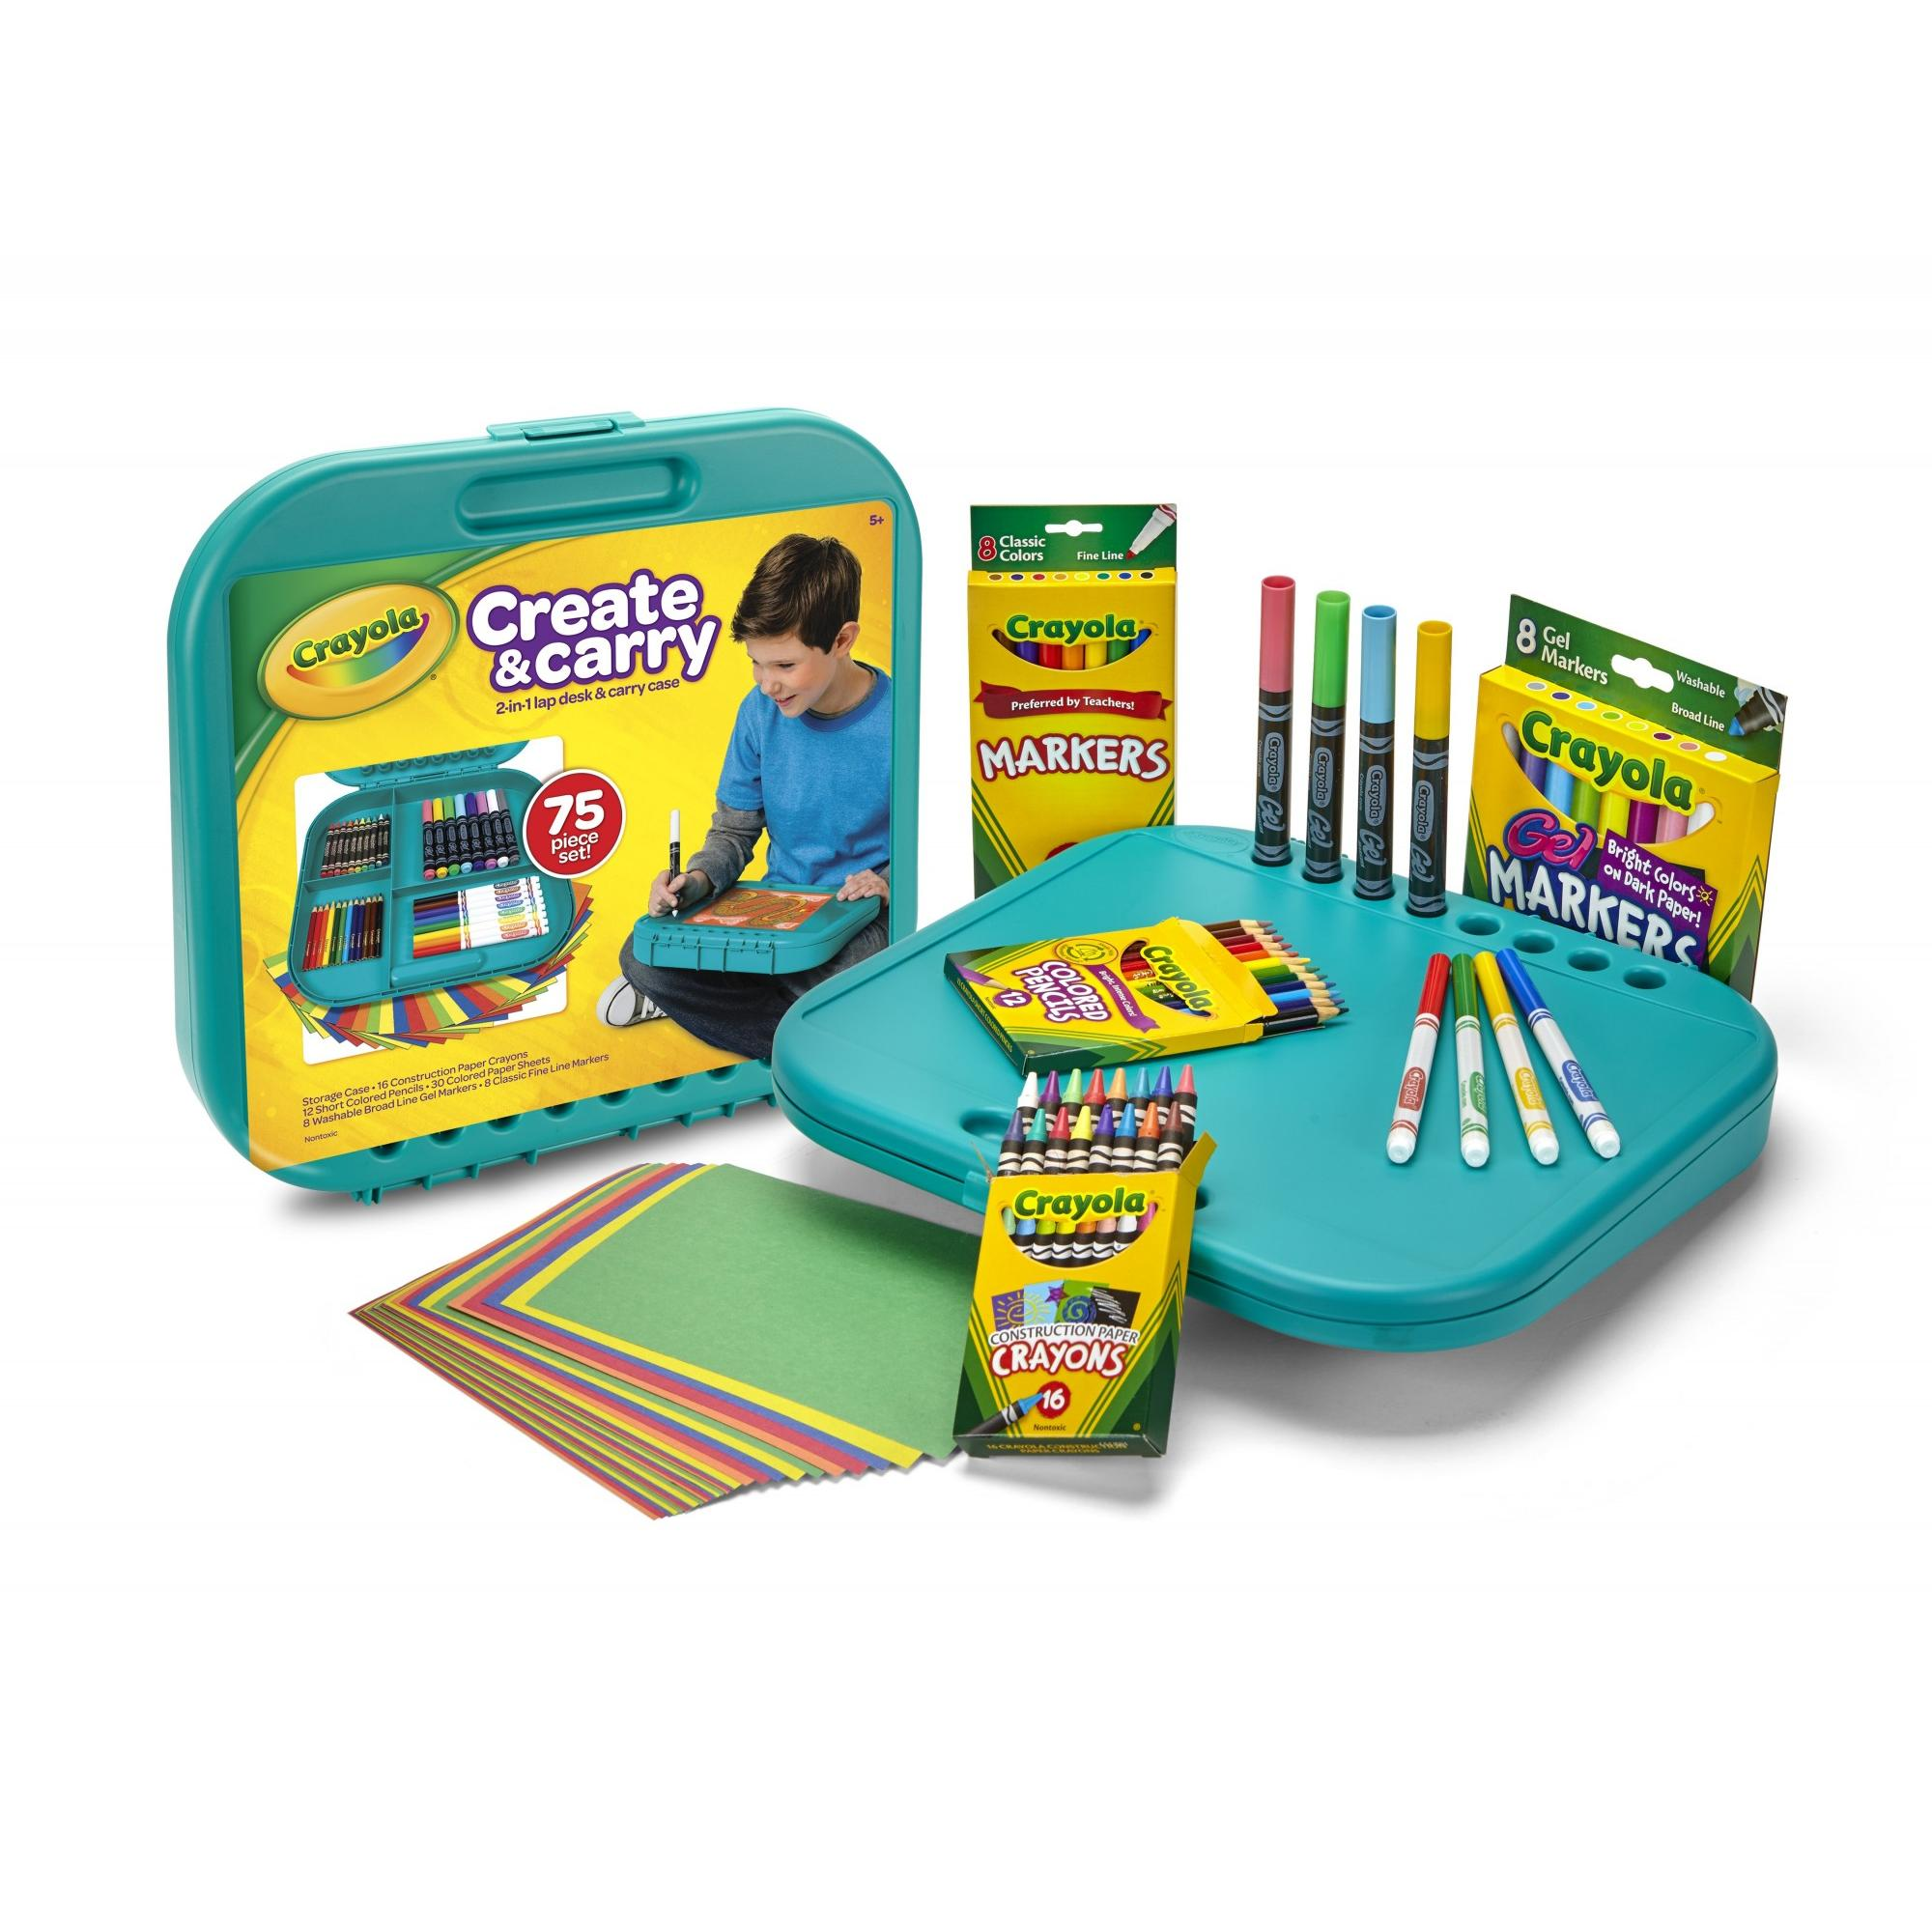 Crayola Create And Carry Storage Case And Lap Desk 2-N-1